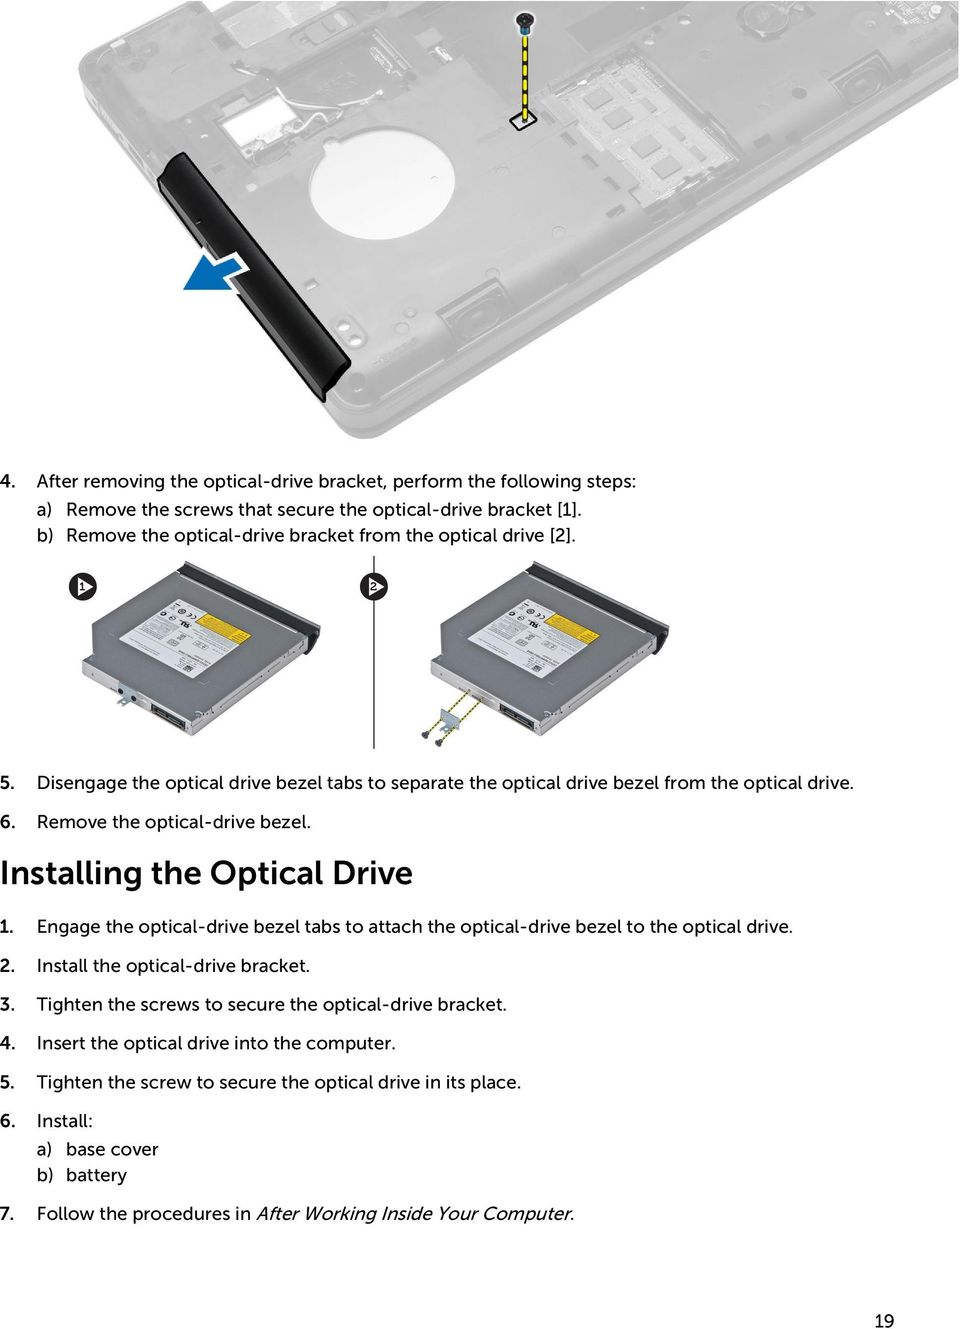 Remove the optical-drive bezel. Installing the Optical Drive 1. Engage the optical-drive bezel tabs to attach the optical-drive bezel to the optical drive. 2. Install the optical-drive bracket.